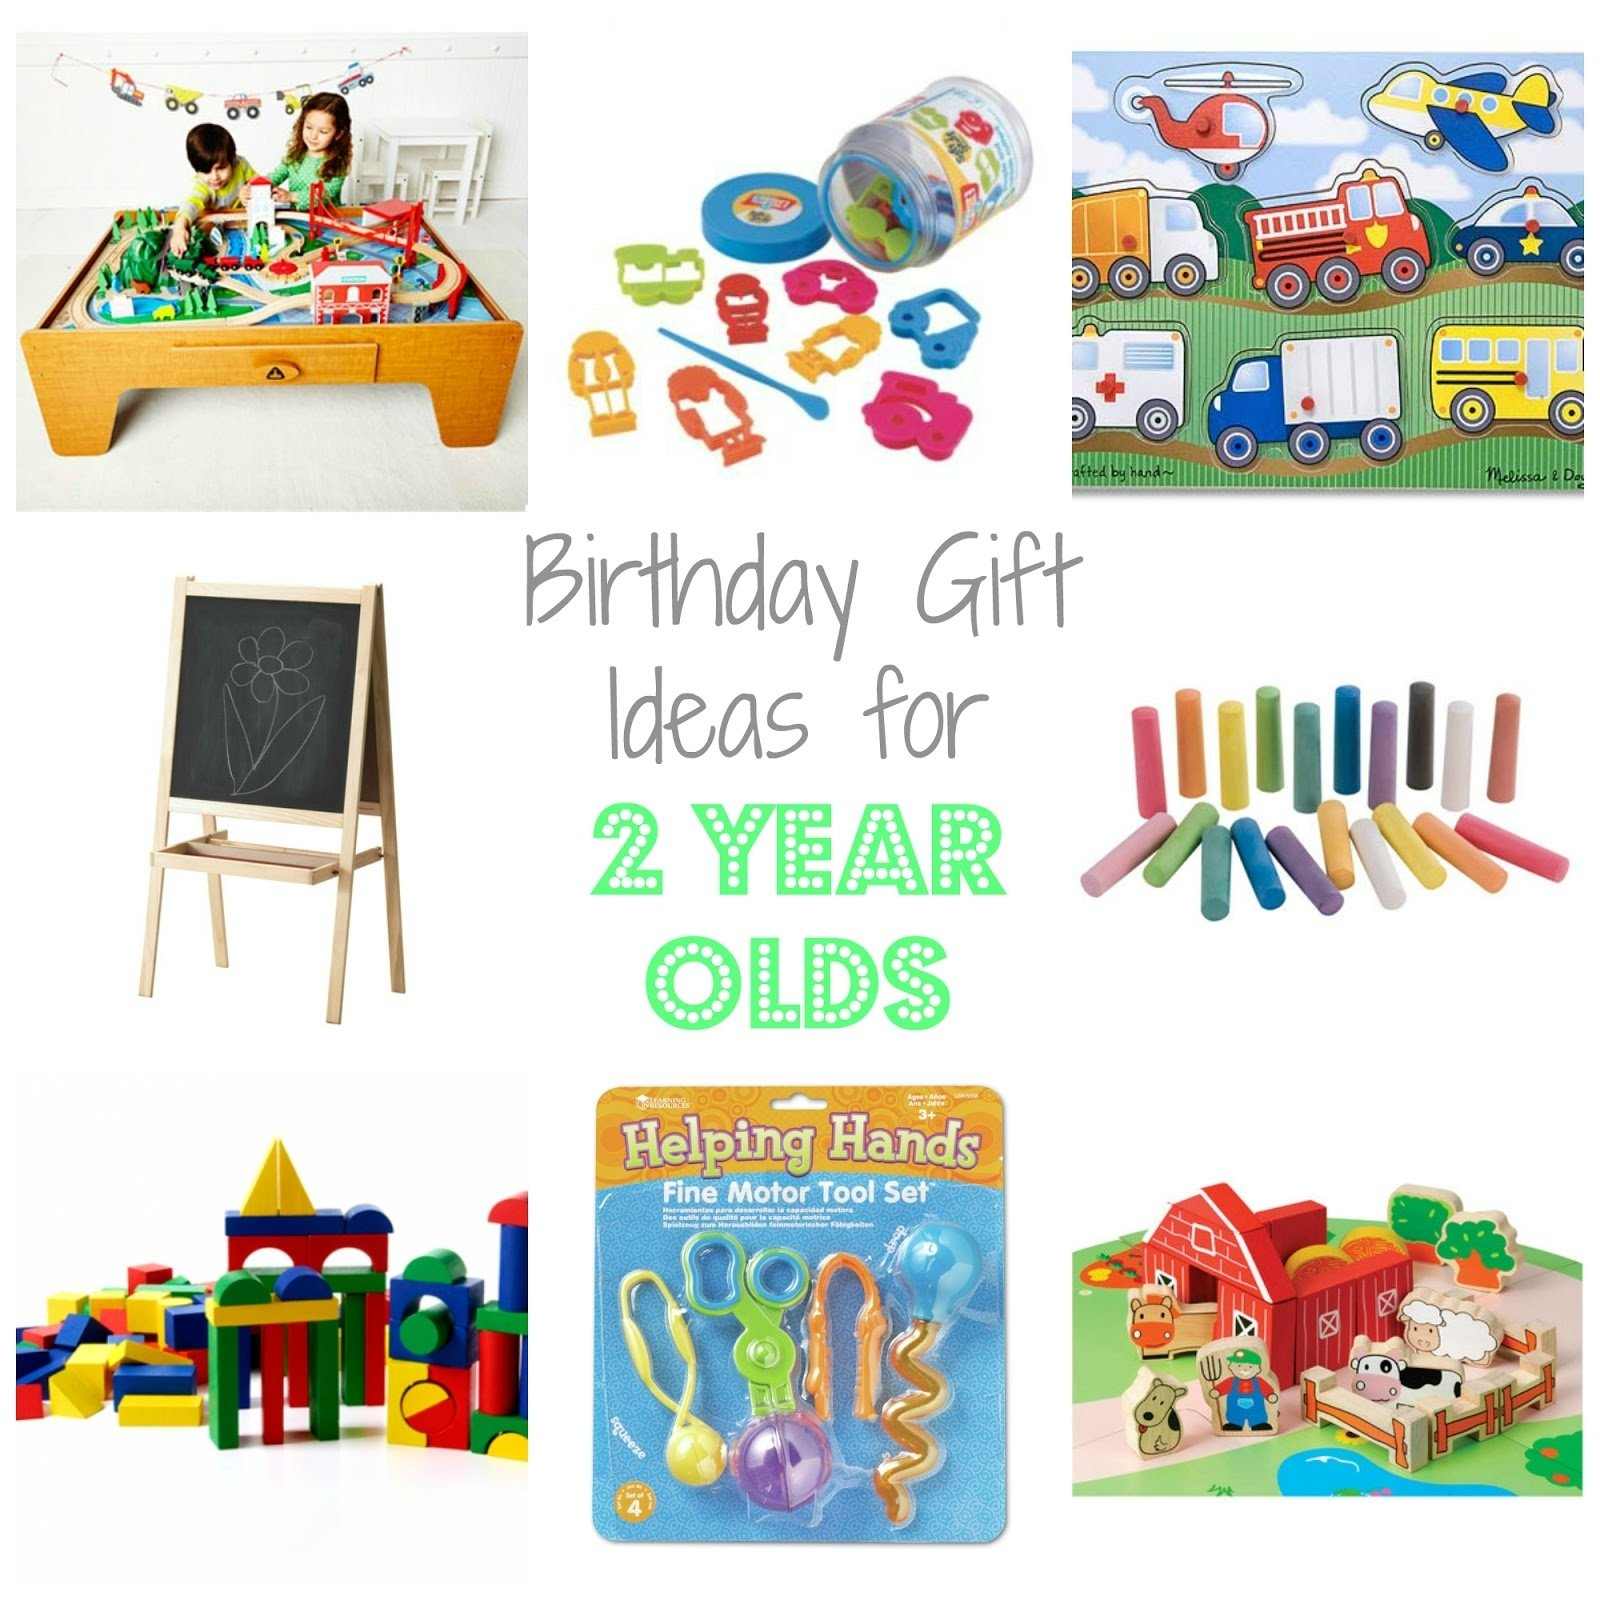 10 Best Gift Ideas For A 2 Year Old birthday gift ideas for two year olds oh little one sweet 2 2020